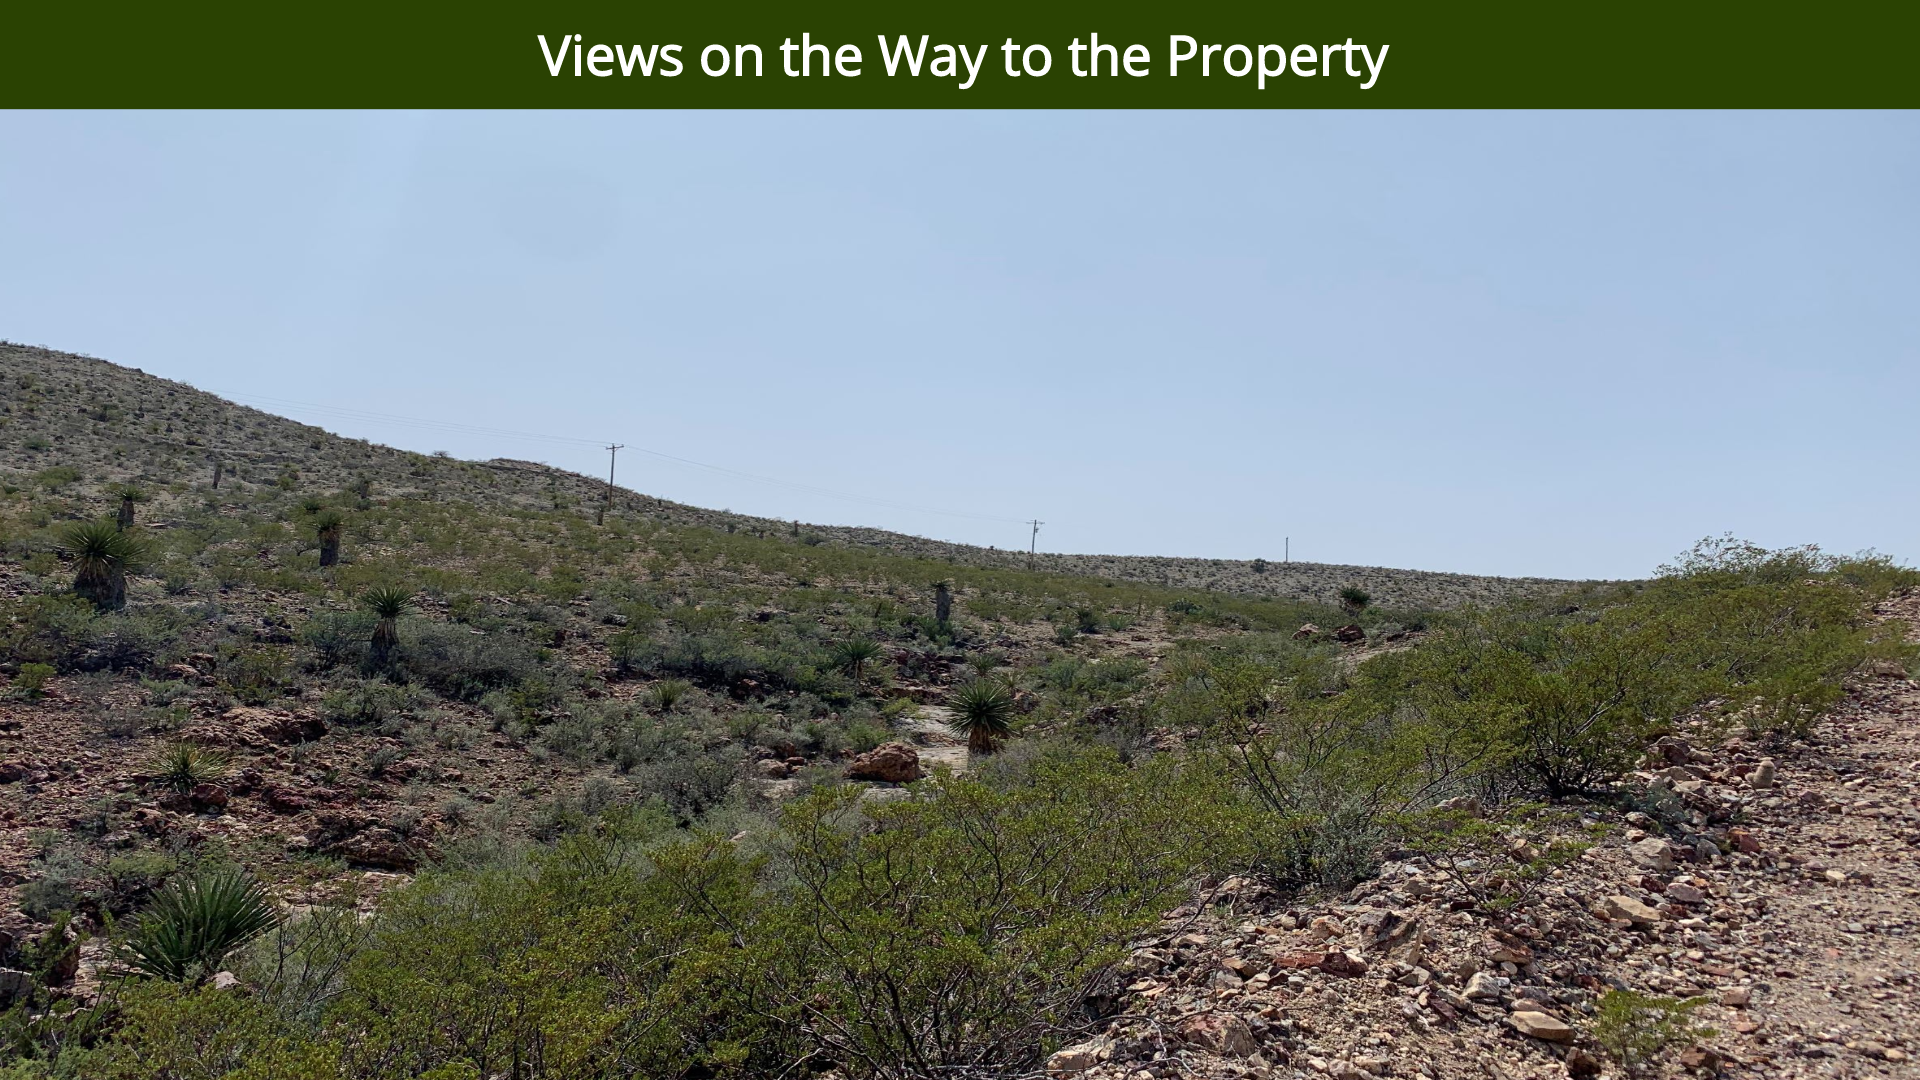 Views on the Way to the Property